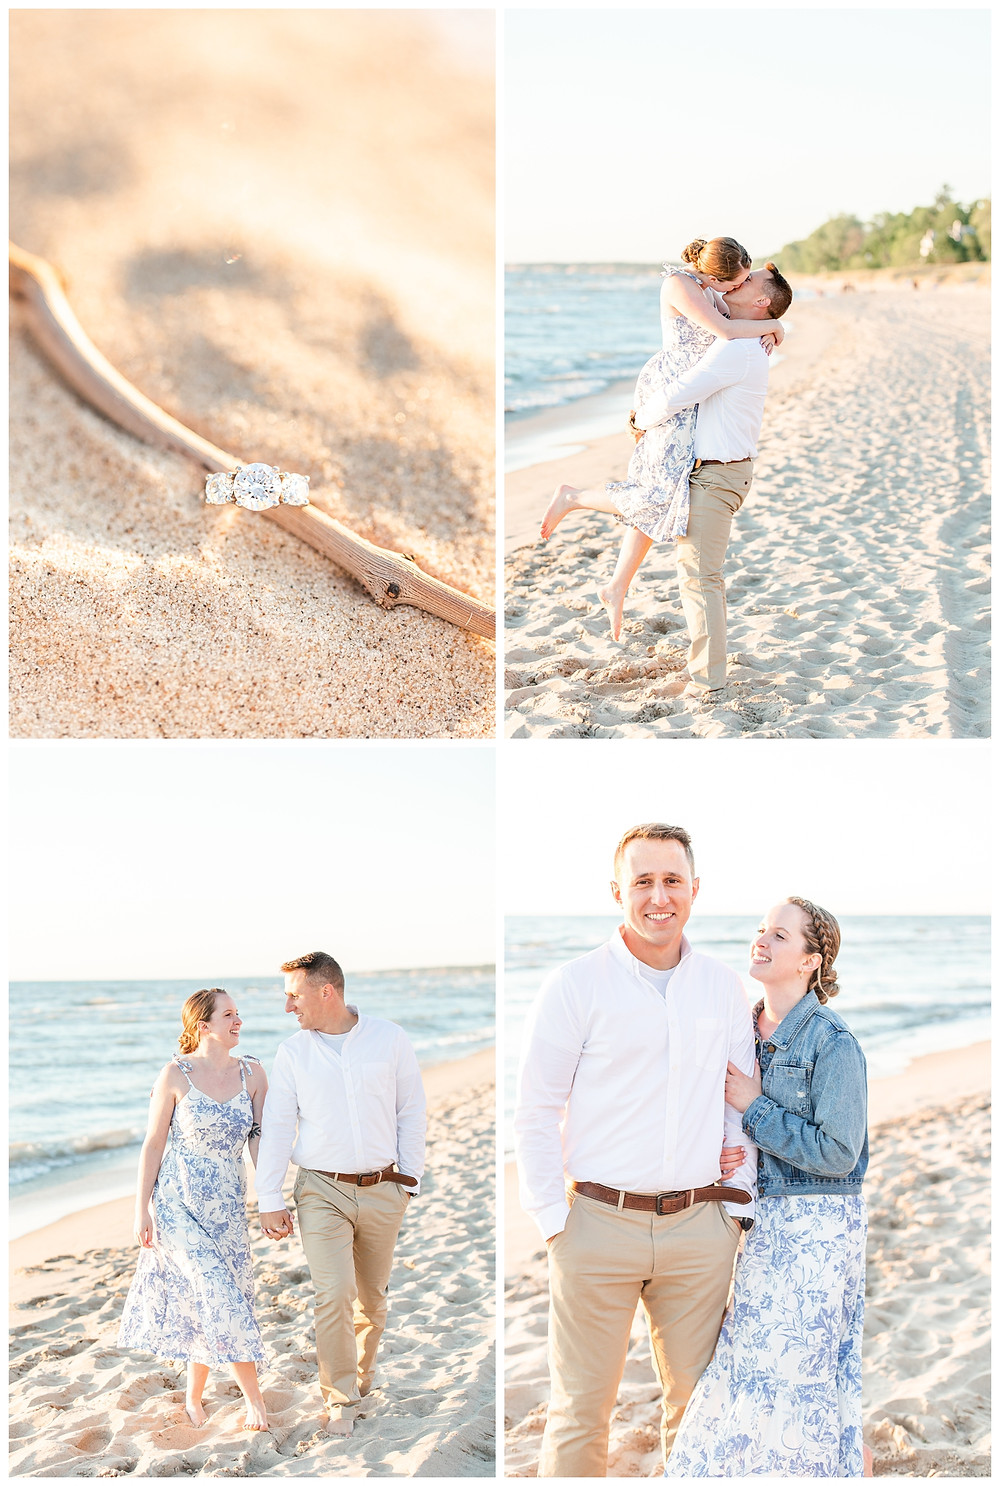 Josh and Andrea wedding photography husband and wife photographer team michigan pictures south haven engagement pictures session beach photo shoot fiance ring shot lift walking